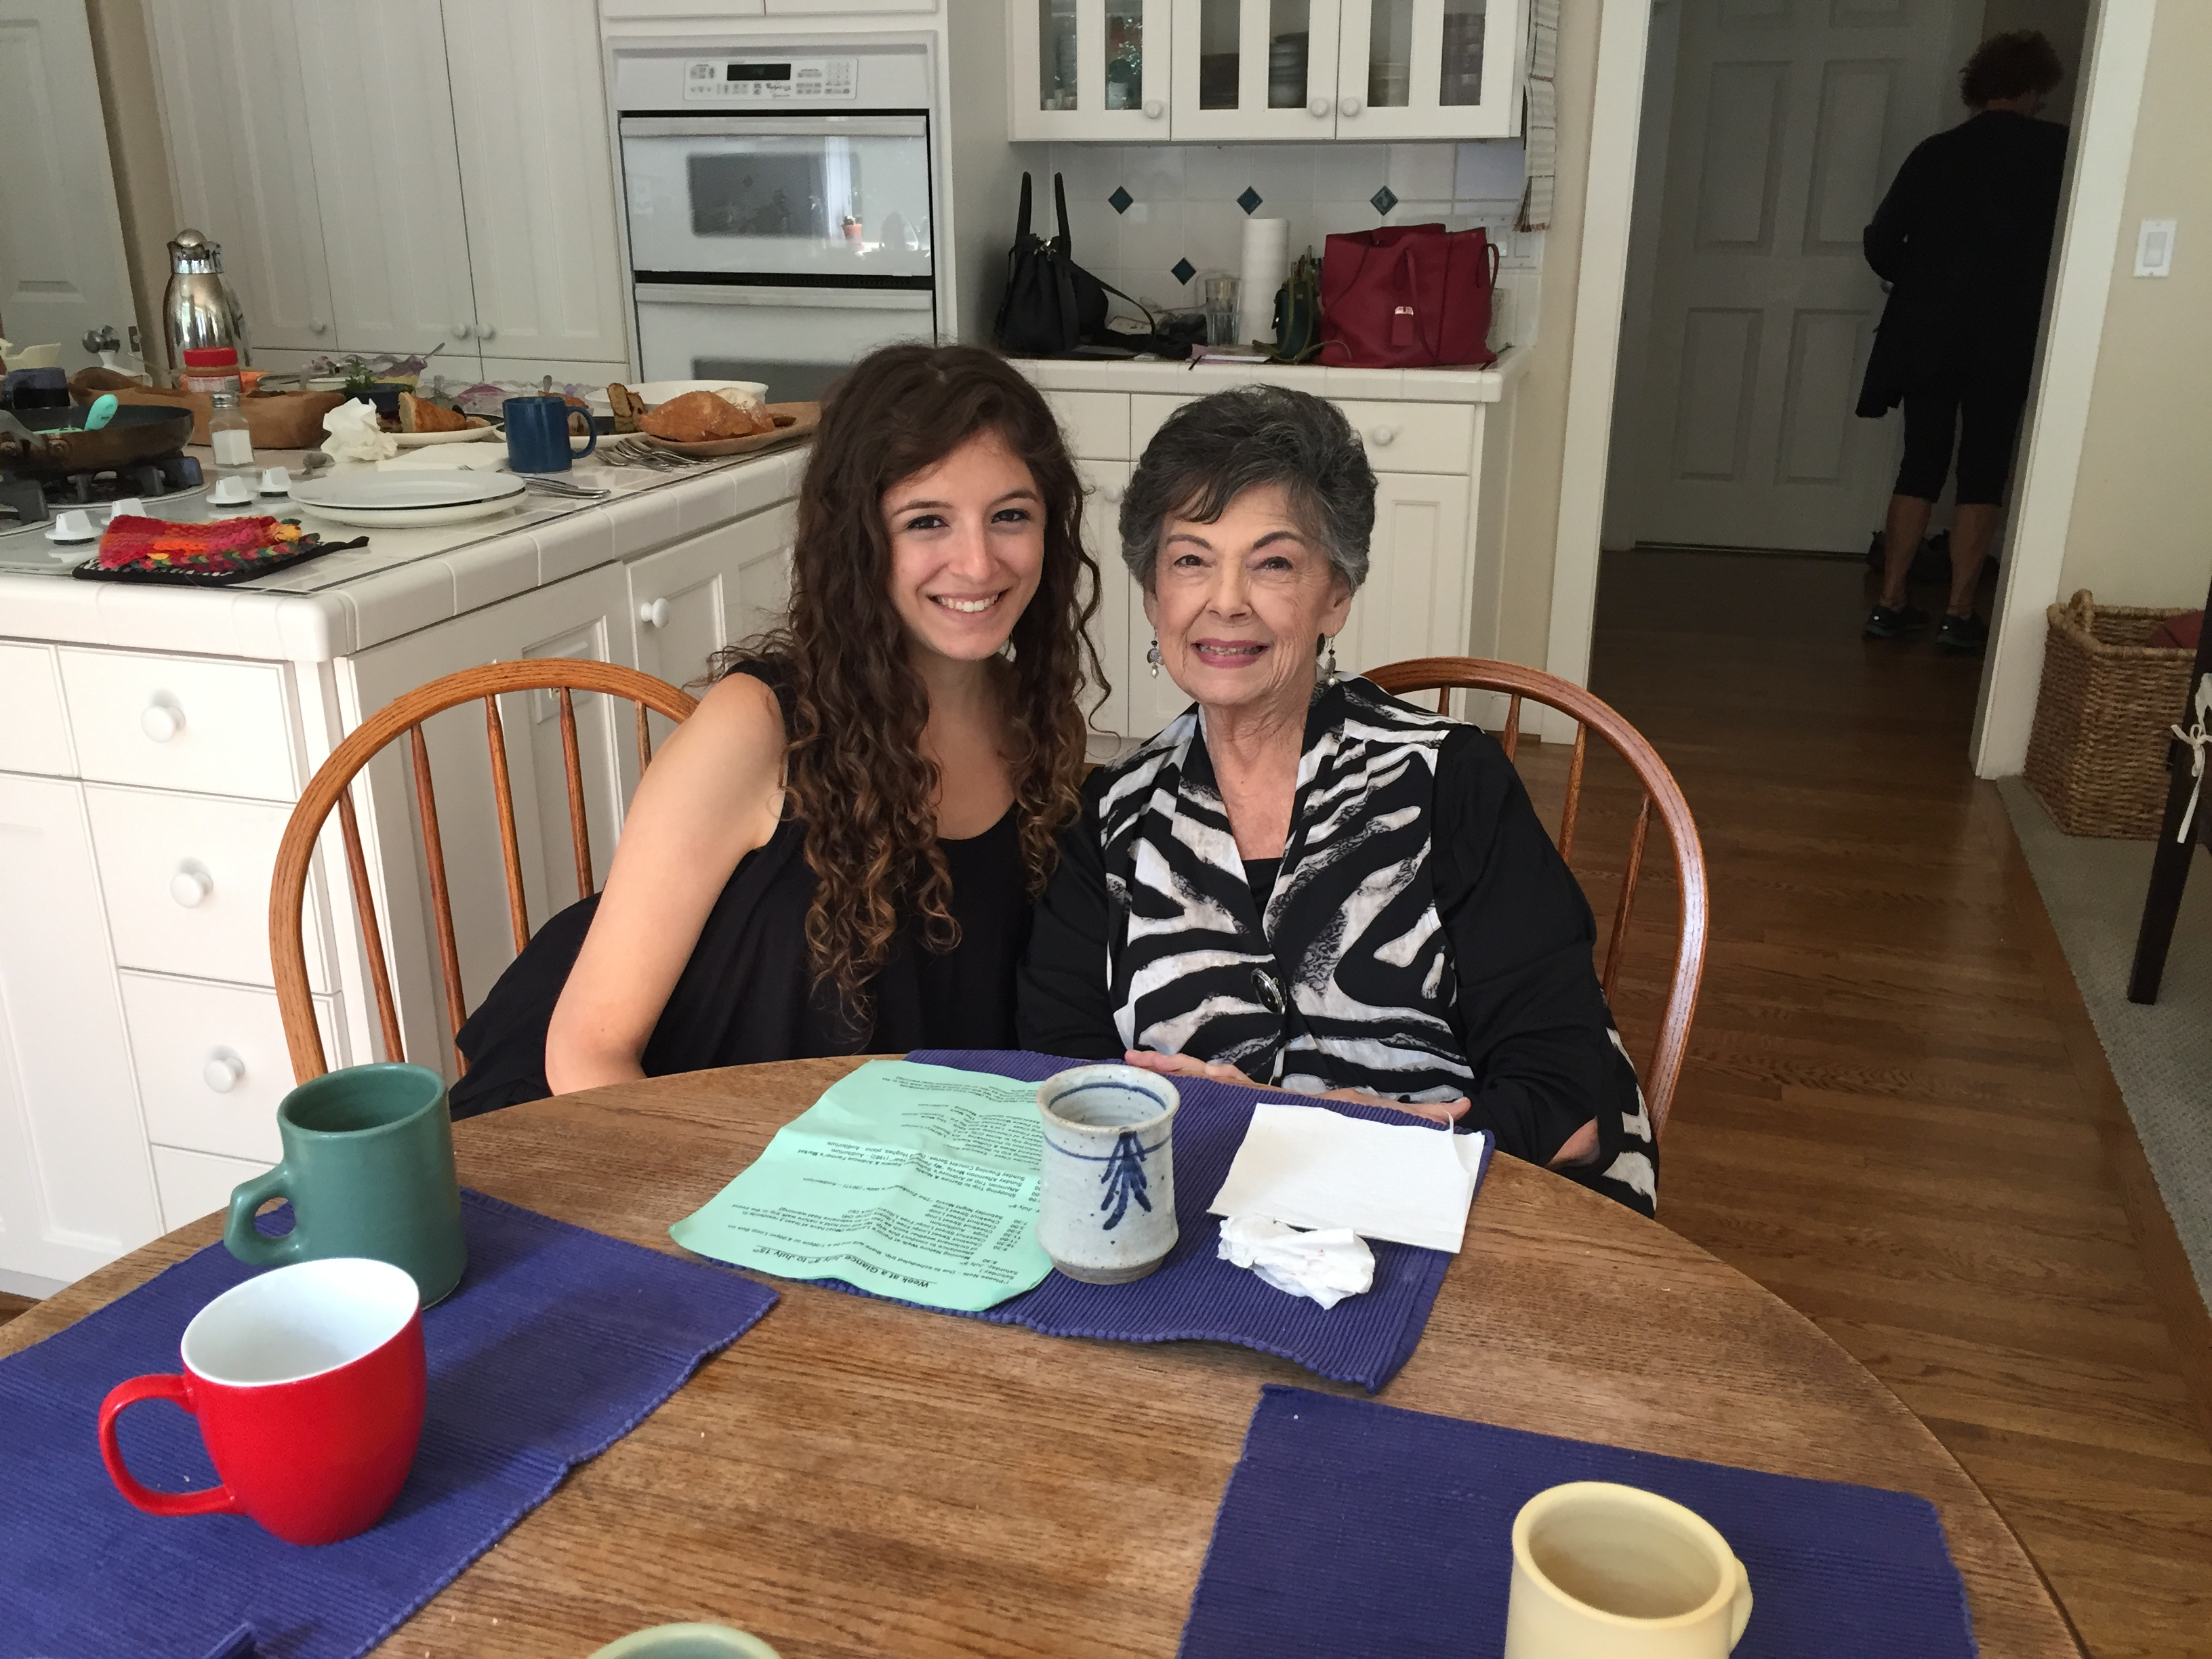 CSPI policy associate Jessi Silverman seated next to her grandmother in a kitchen.